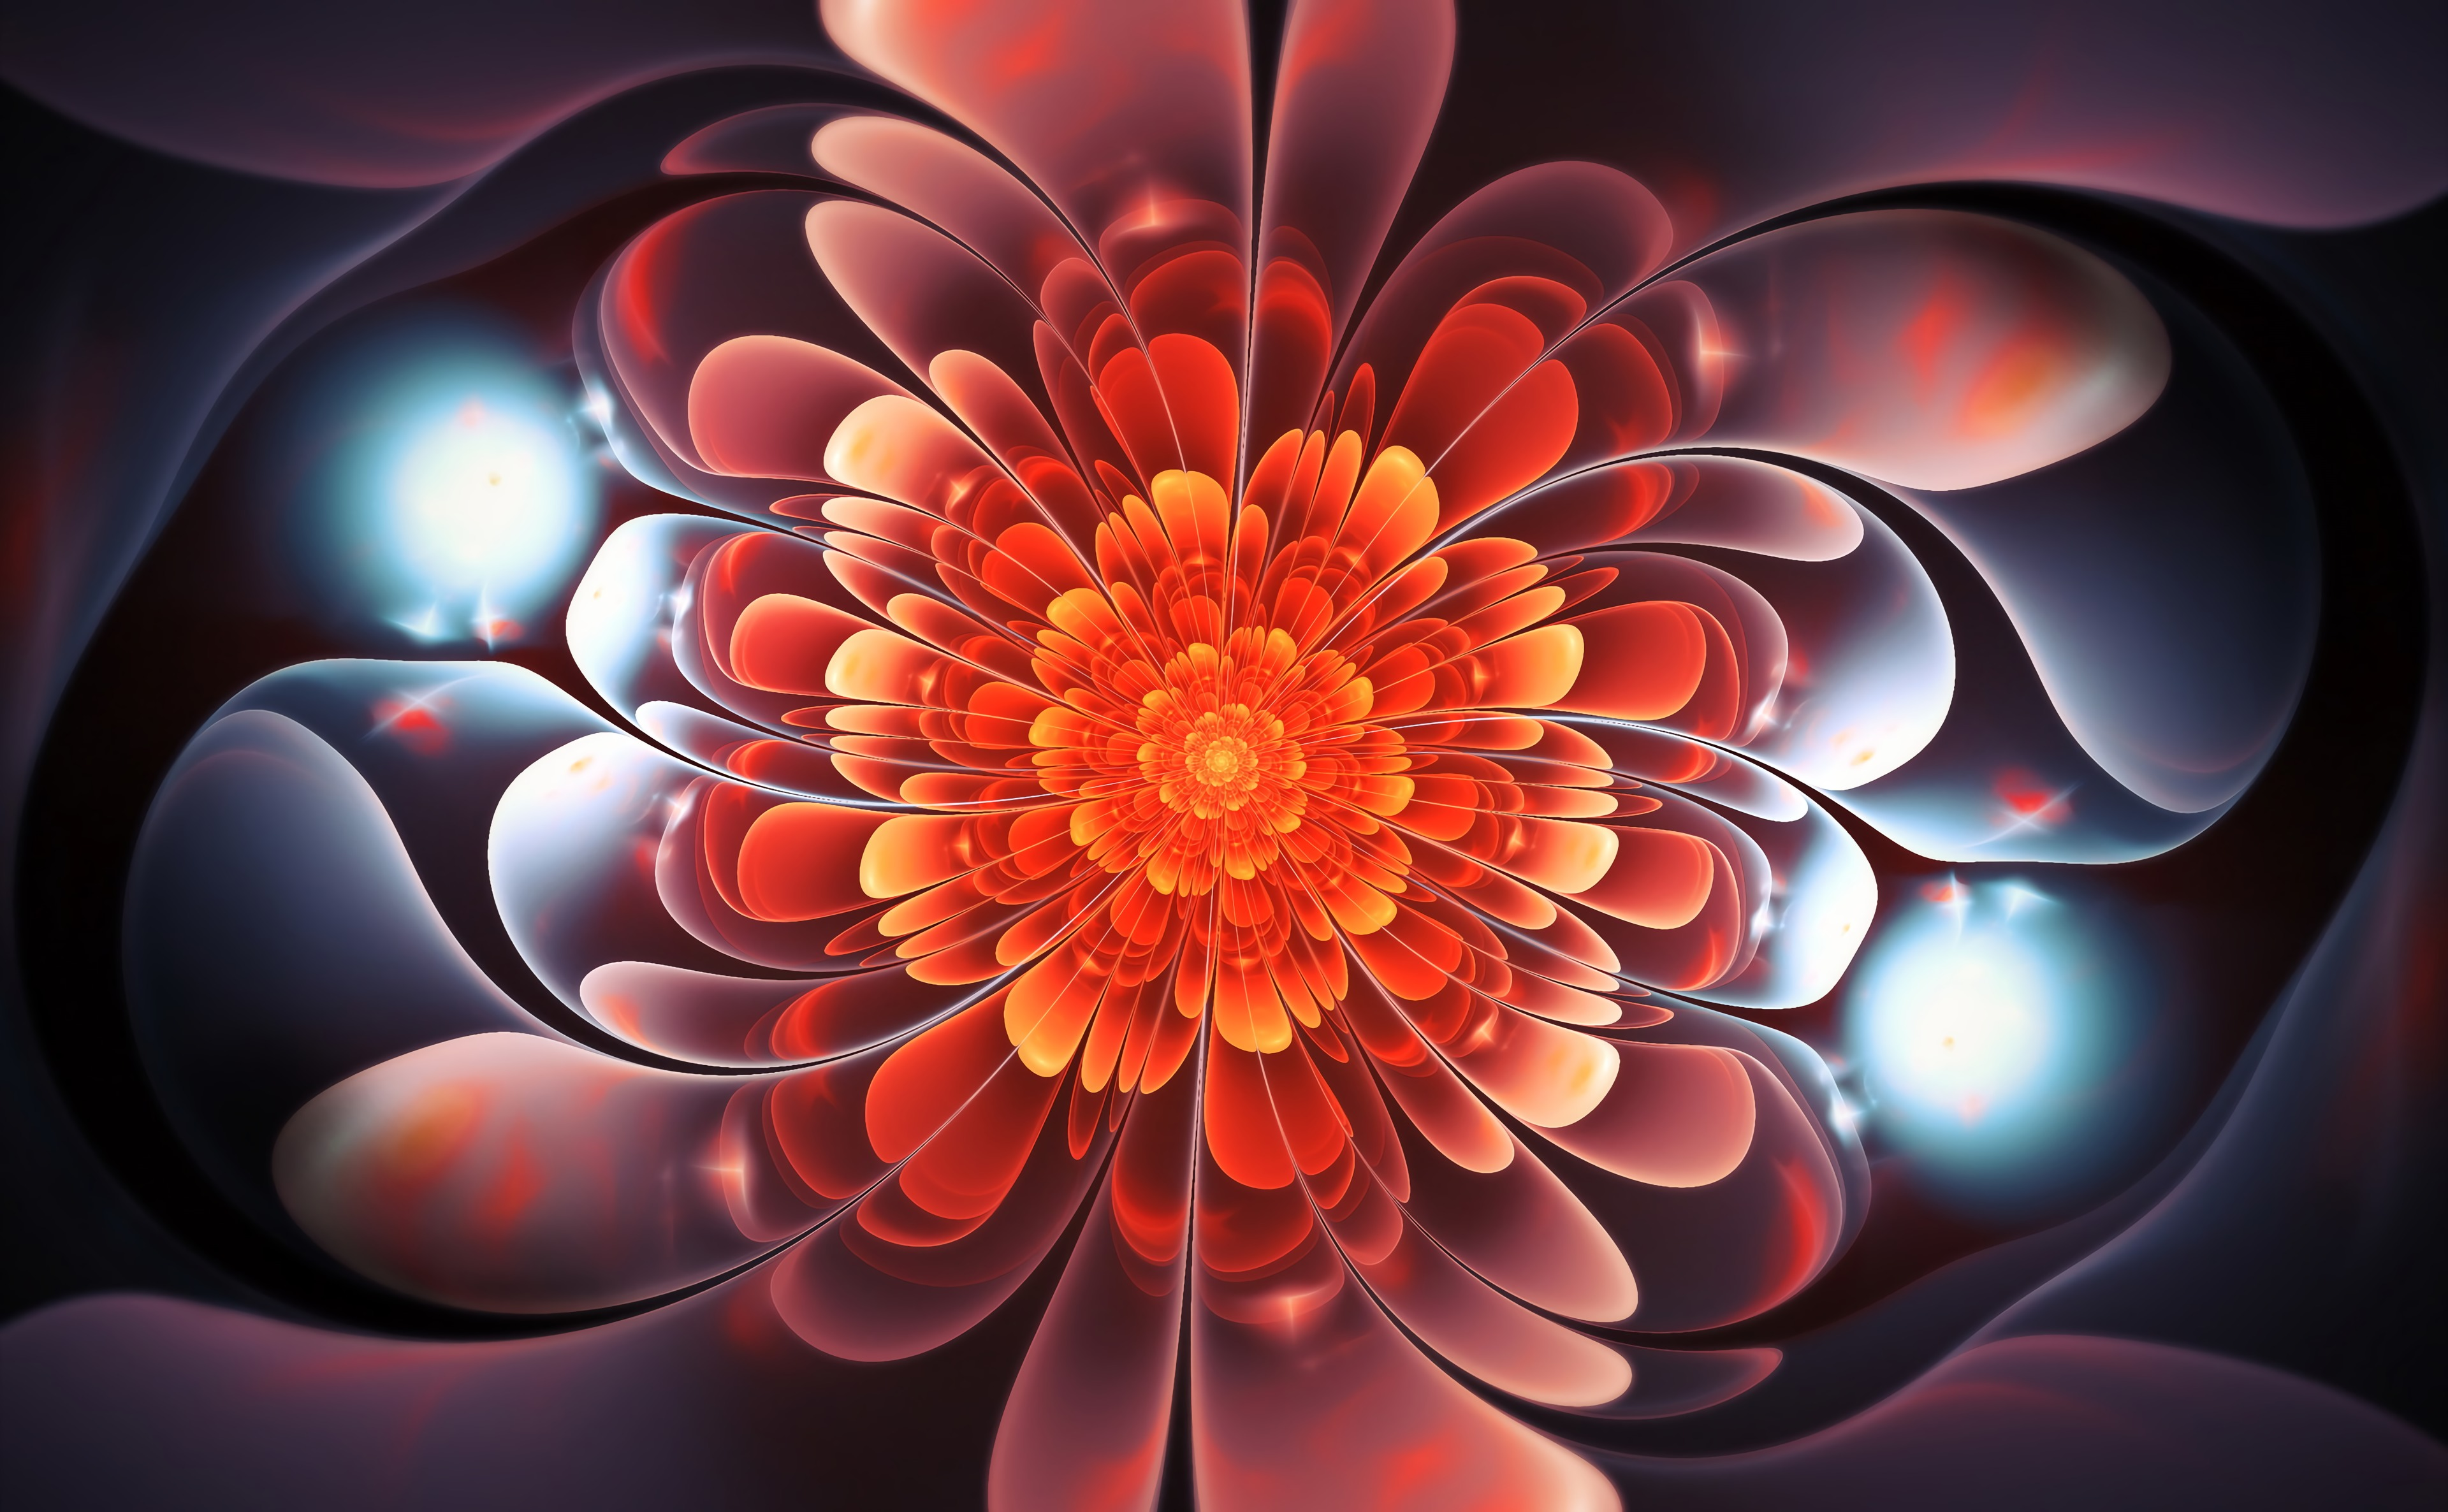 133239 download wallpaper Abstract, Fractal, Bright, Swirling, Involute, Glow, Spiral screensavers and pictures for free